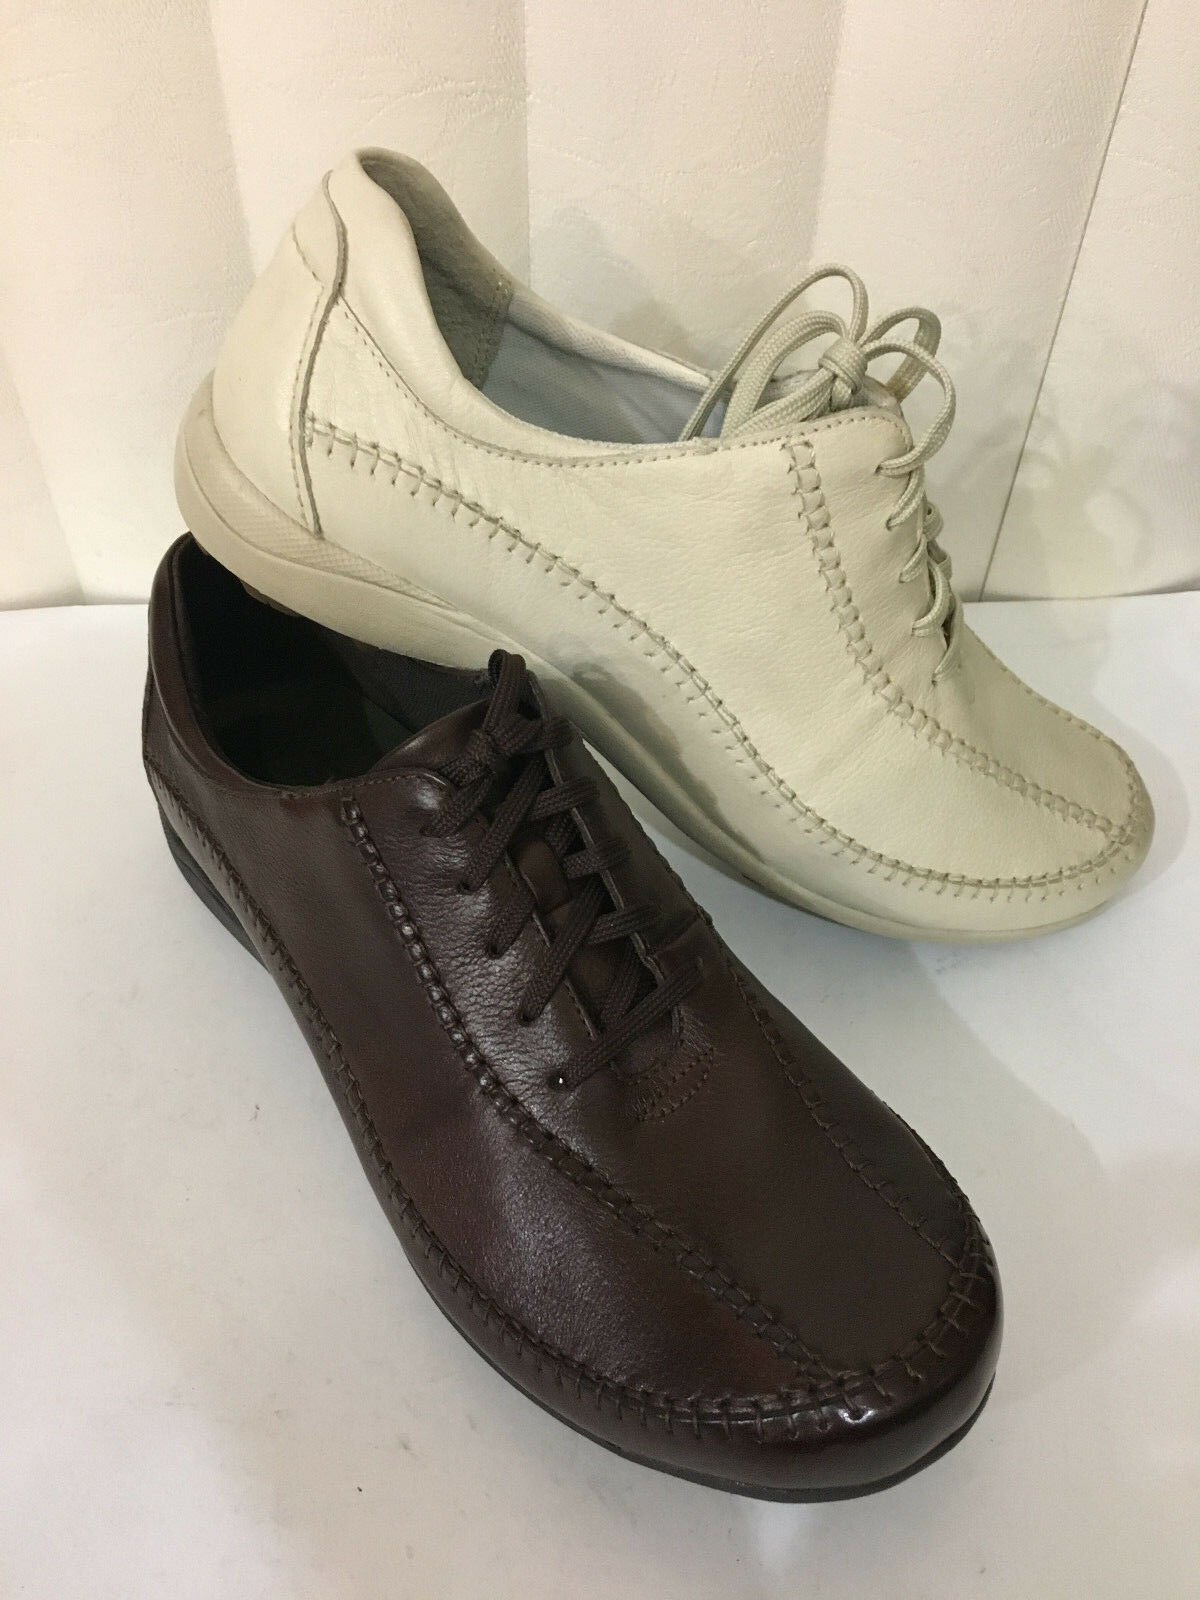 Hush Puppies Energetic Coffee/Marshmallow/ noir  Leather Lace Up Sneakers W/XWIDE